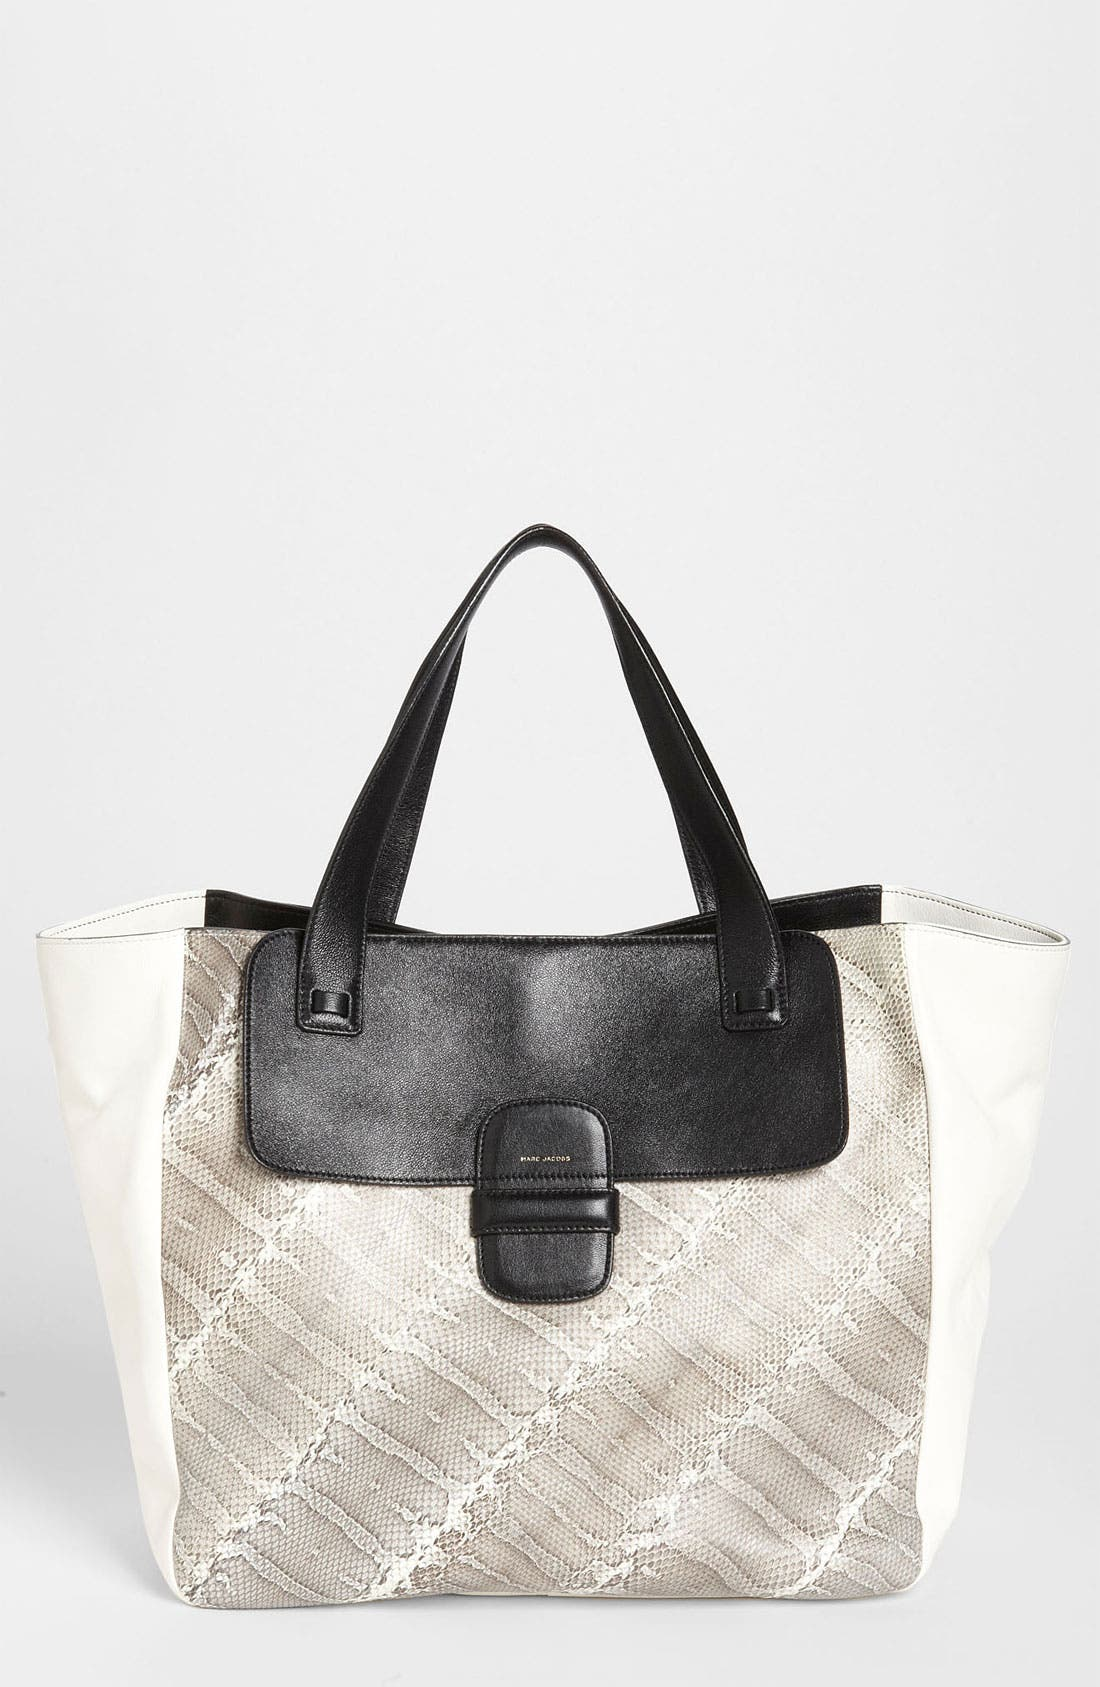 Alternate Image 1 Selected - MARC JACOBS 'Khaki' Snakeskin & Leather Tote